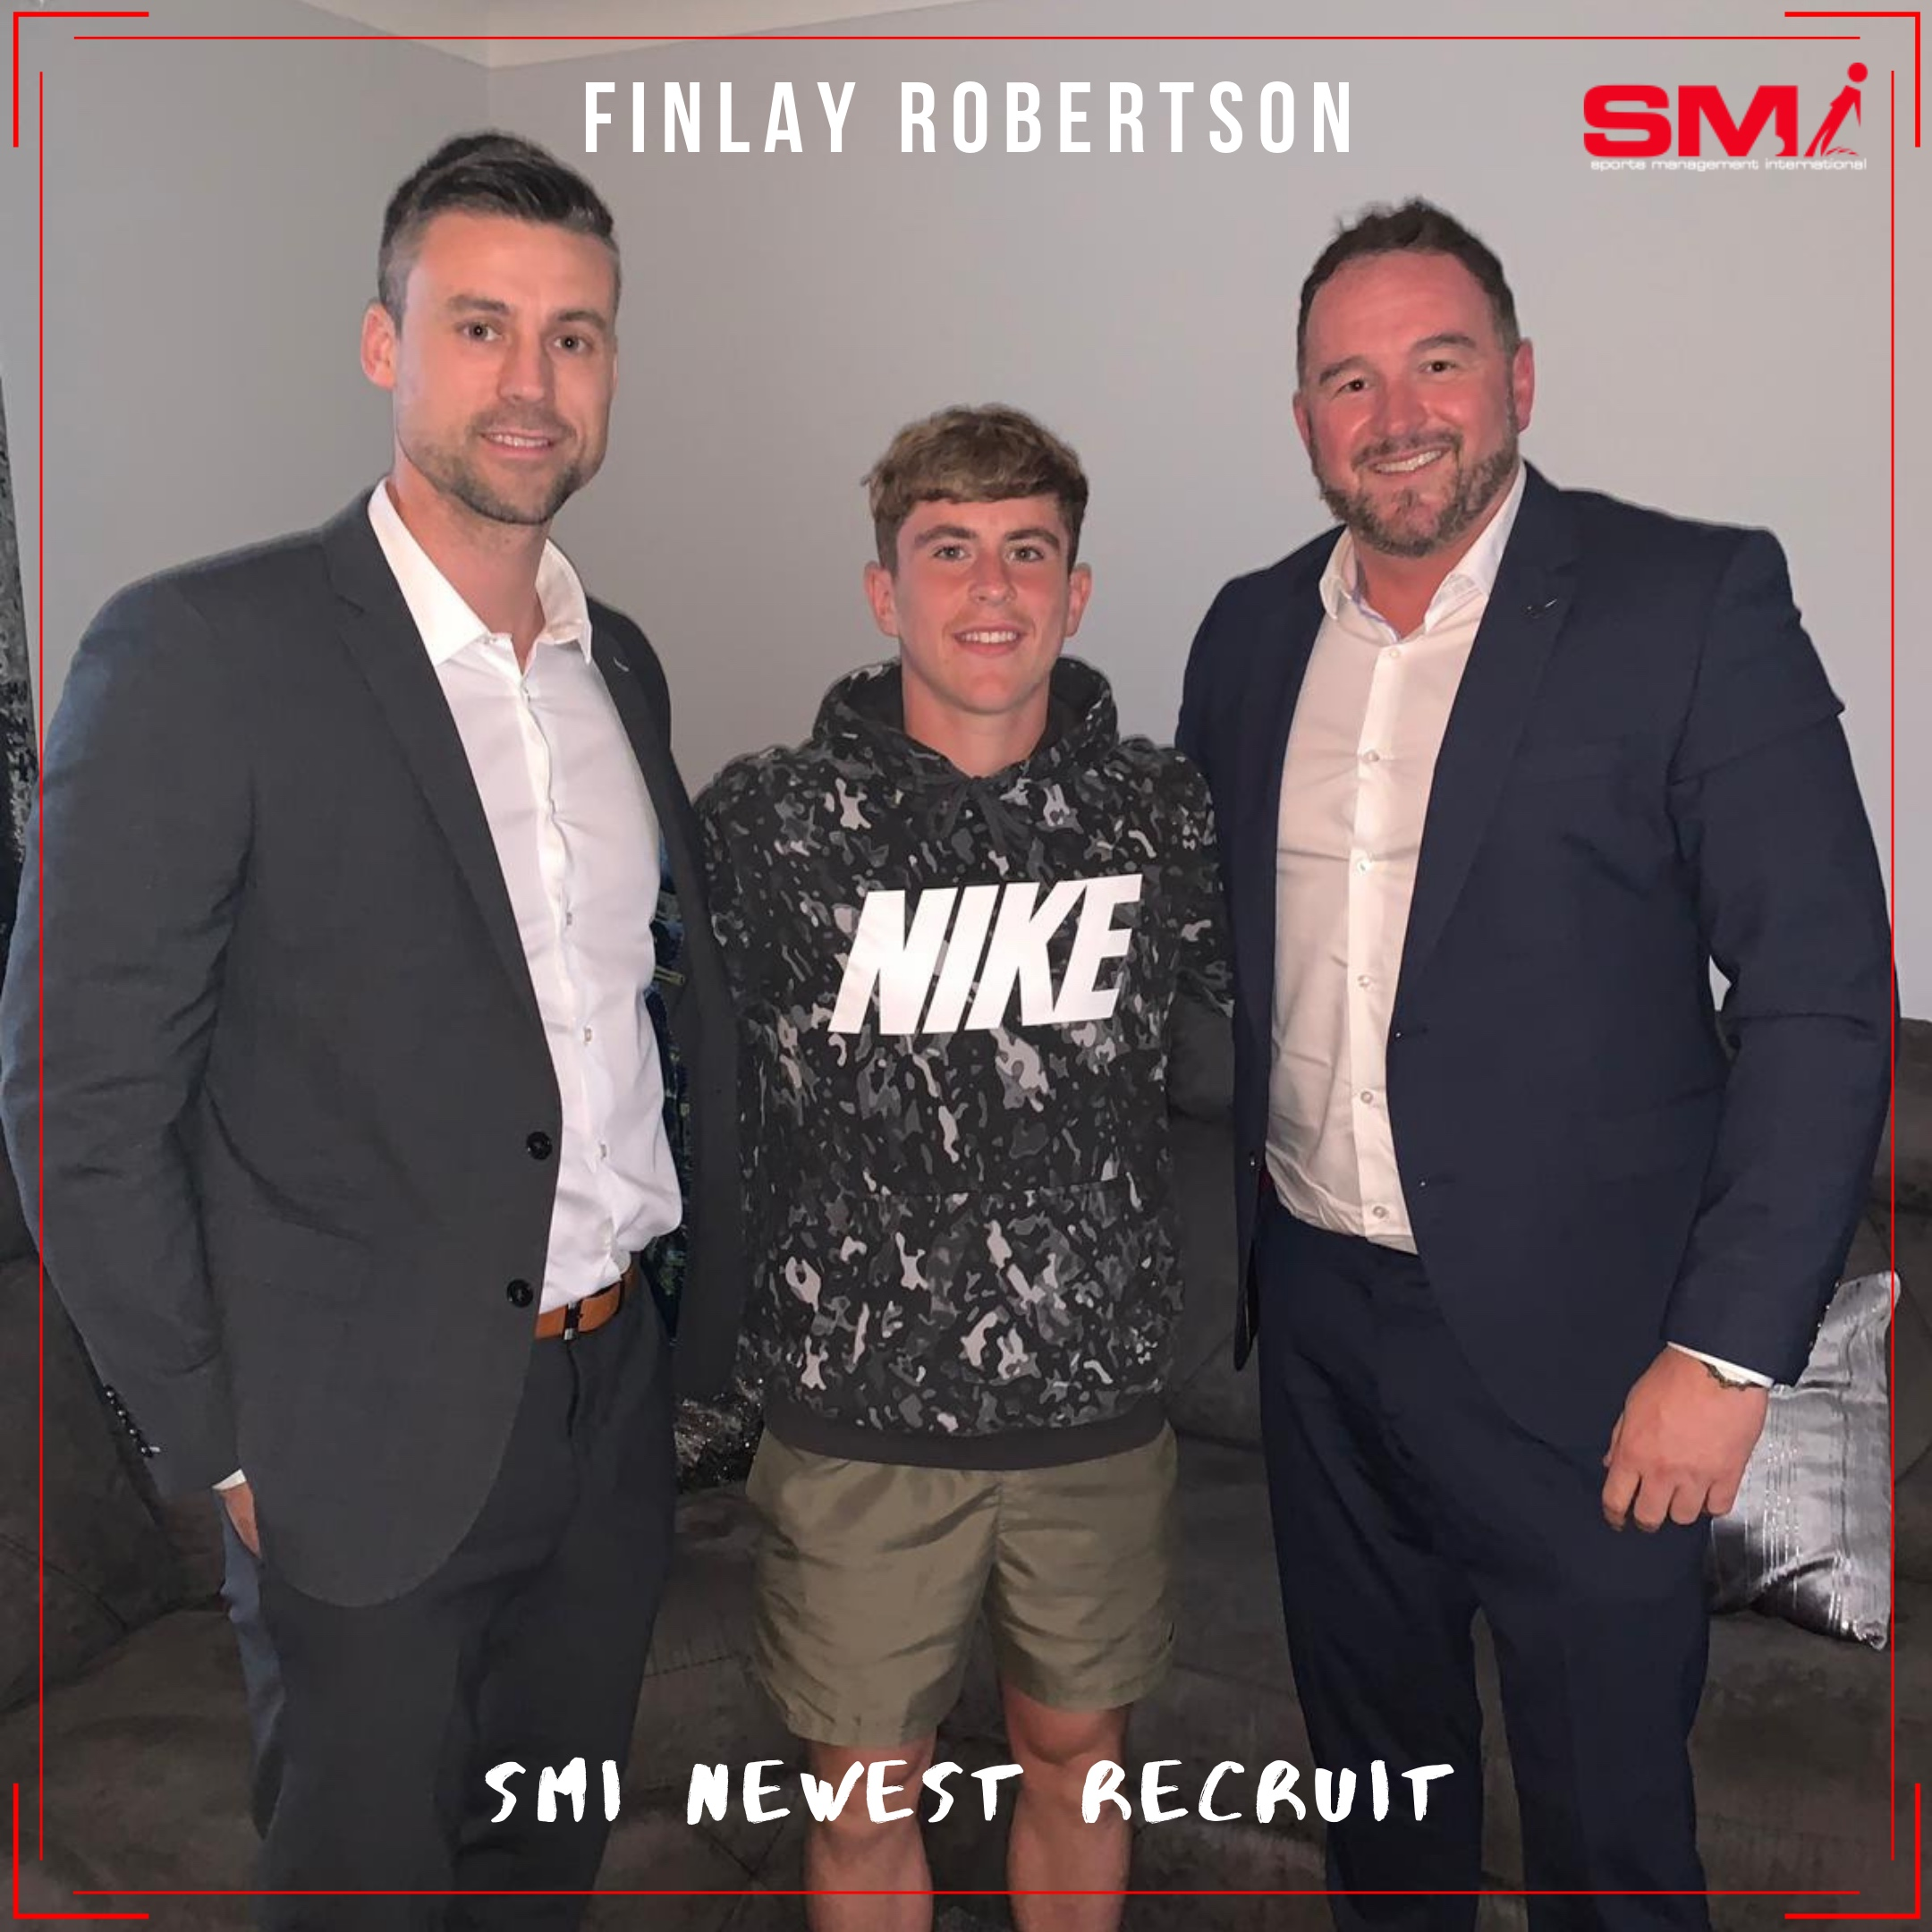 Exciting new SMI recruit Finlay Robertson